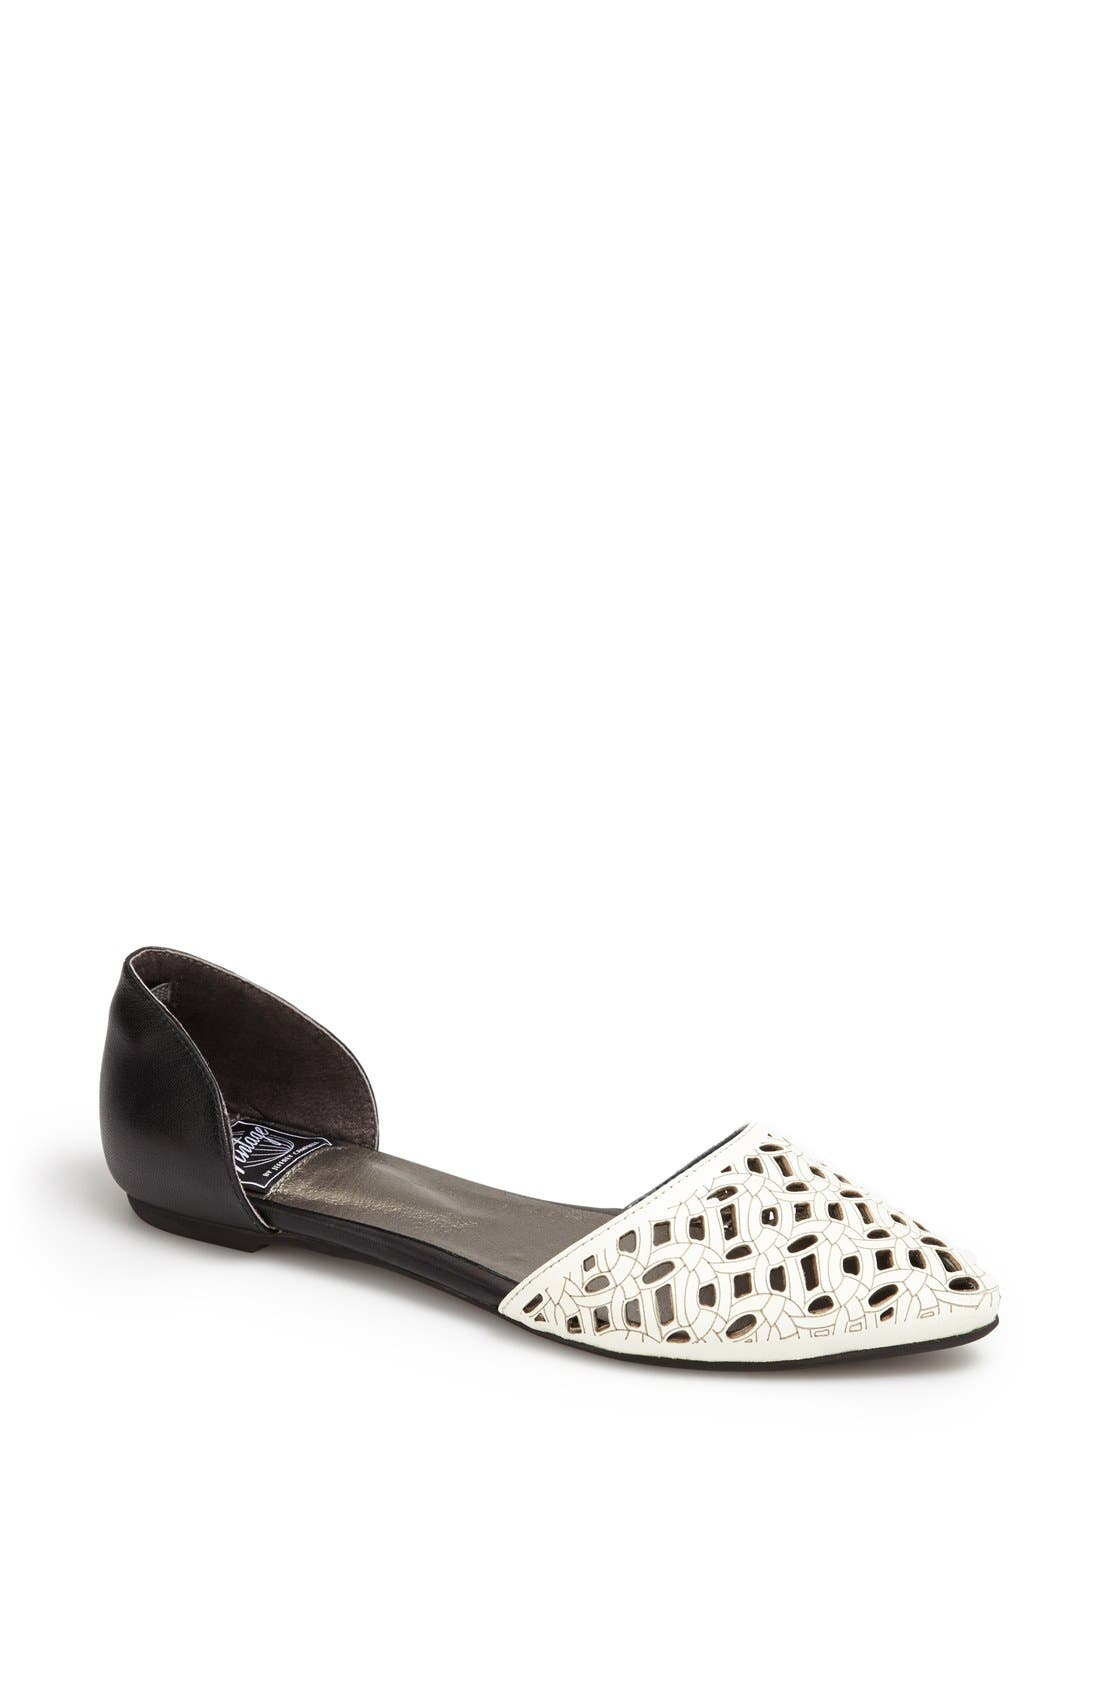 Alternate Image 1 Selected - Jeffrey Campbell 'In Love' Laser Cut d'Orsay Flat